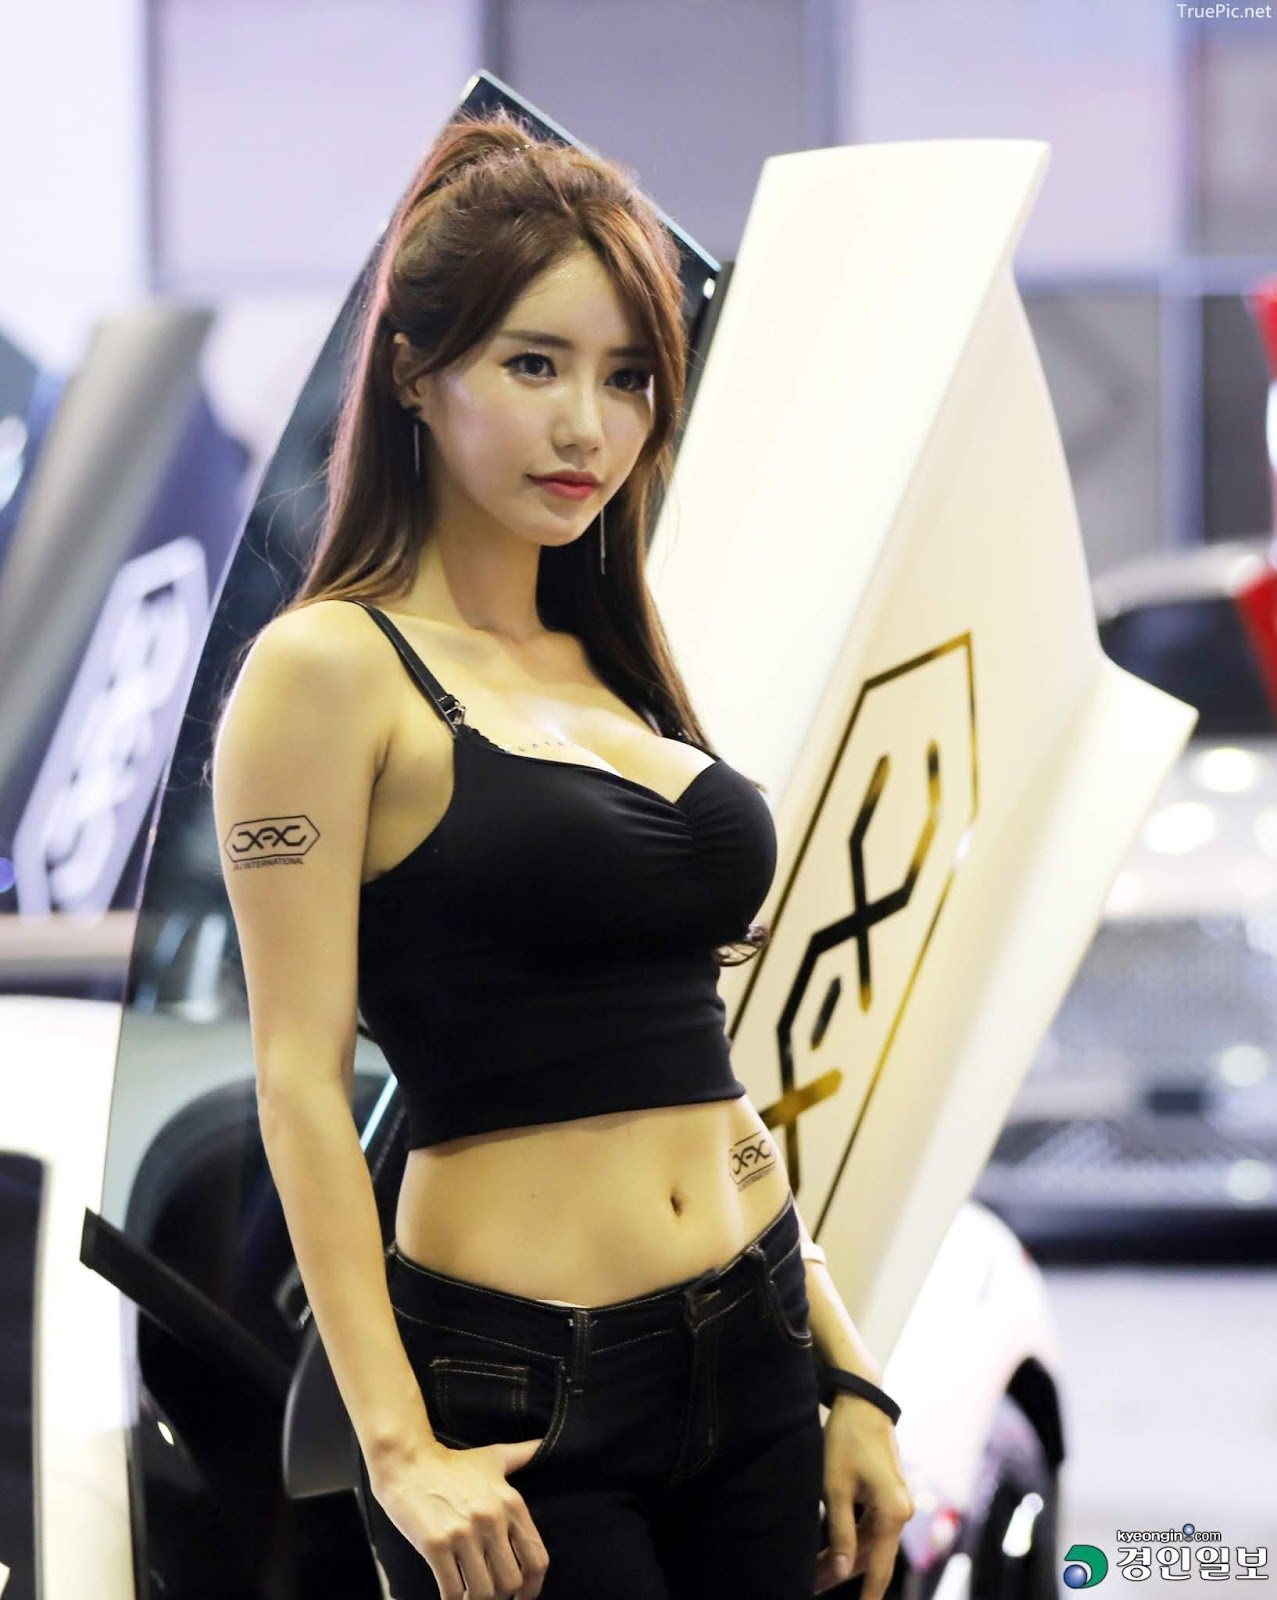 Korean Racing Model - Im Sola - Seoul Auto Salon 2019 - Picture 4